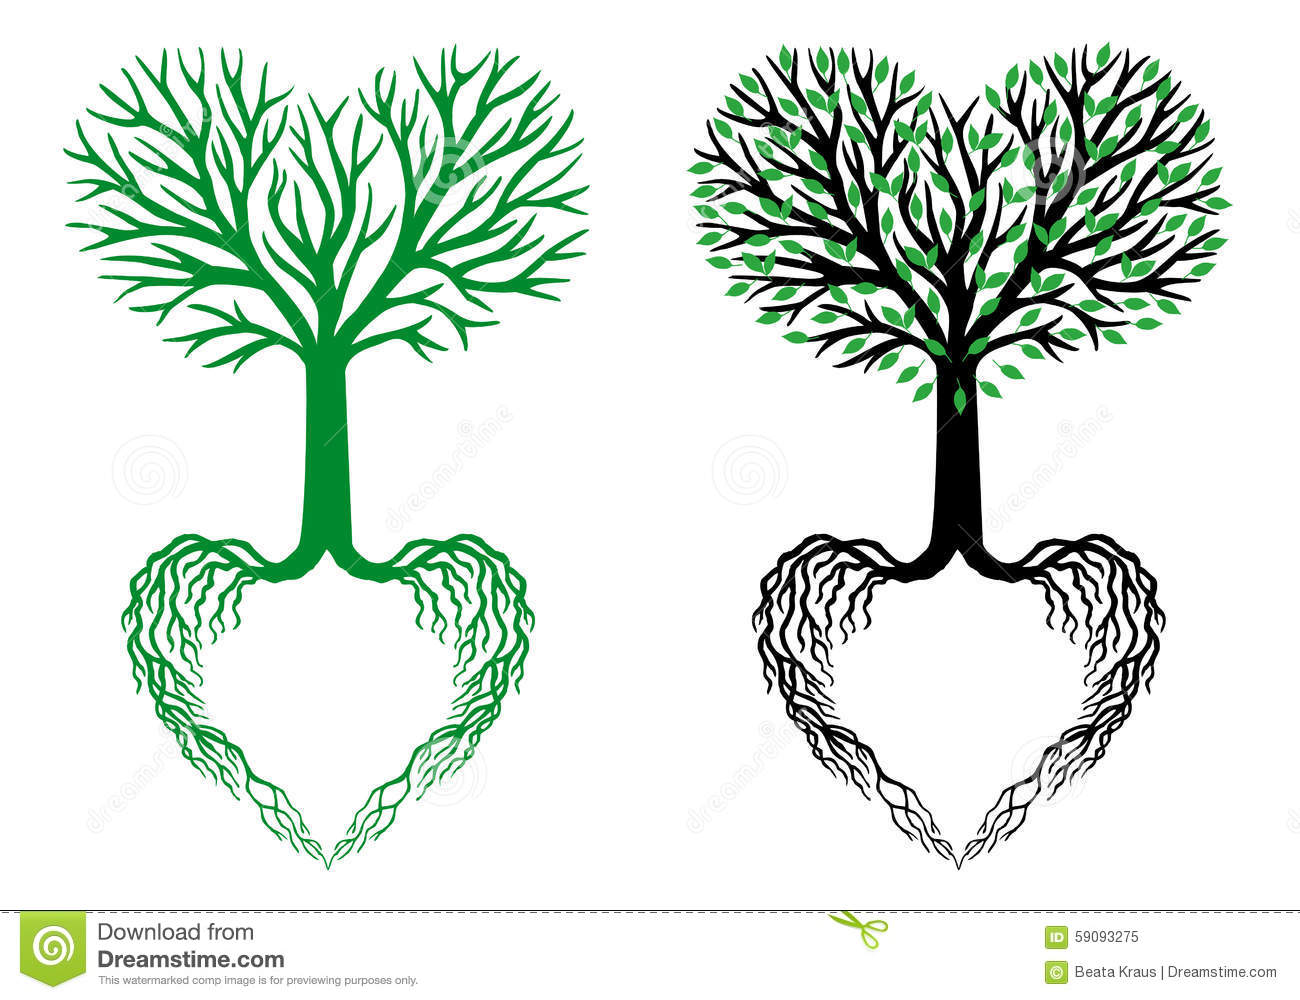 Tree of life, heart tree, vector